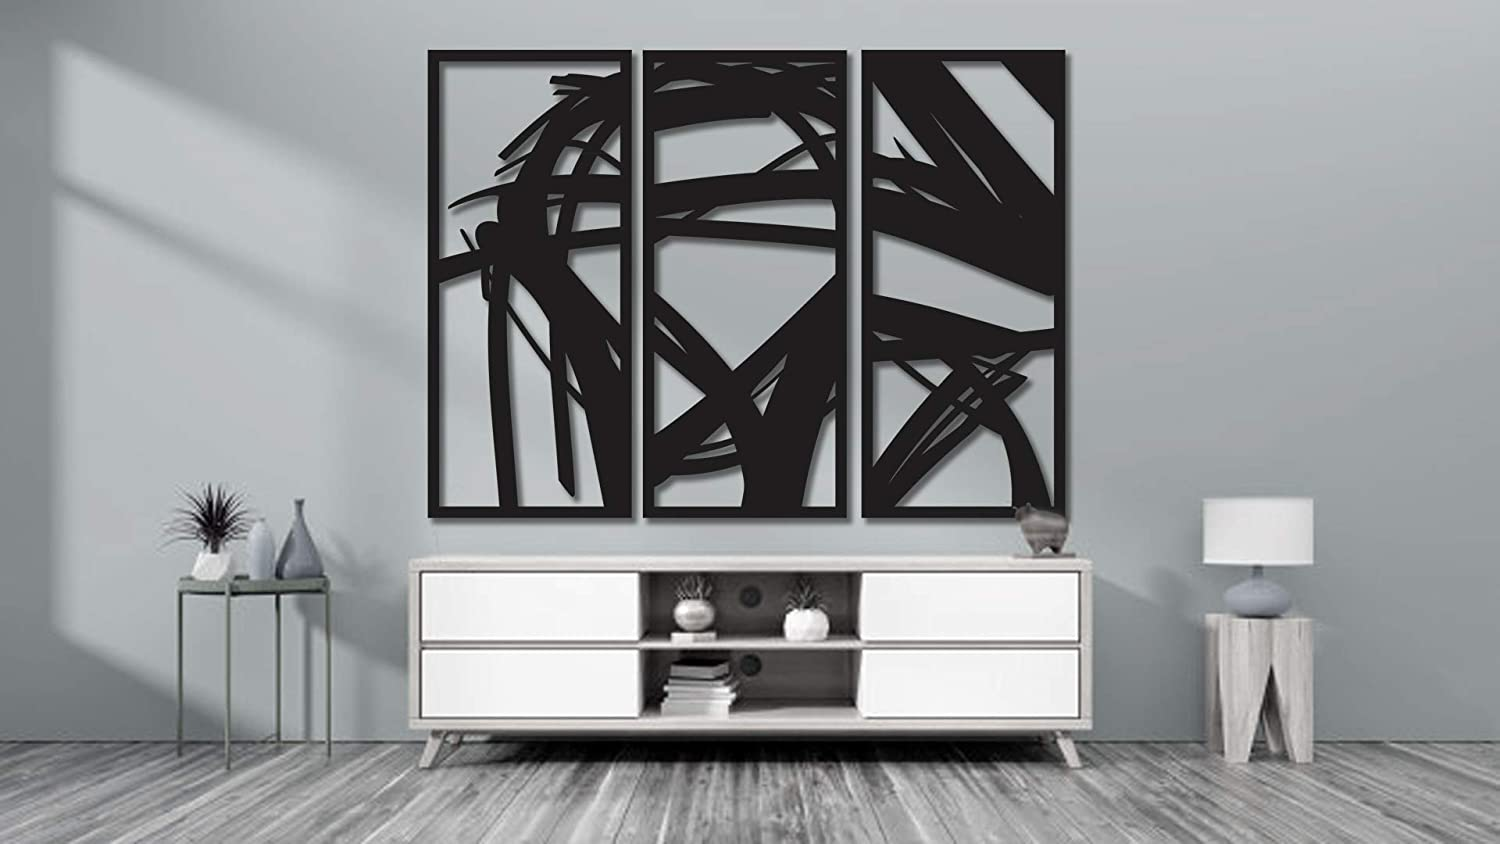 Motsure | 3 Piece Abstract Metal Wall Art Home Décor Living Room Office Dining Aluminum Modern Design Sculpture Ready to Hang for Outdoors and Indoors (40